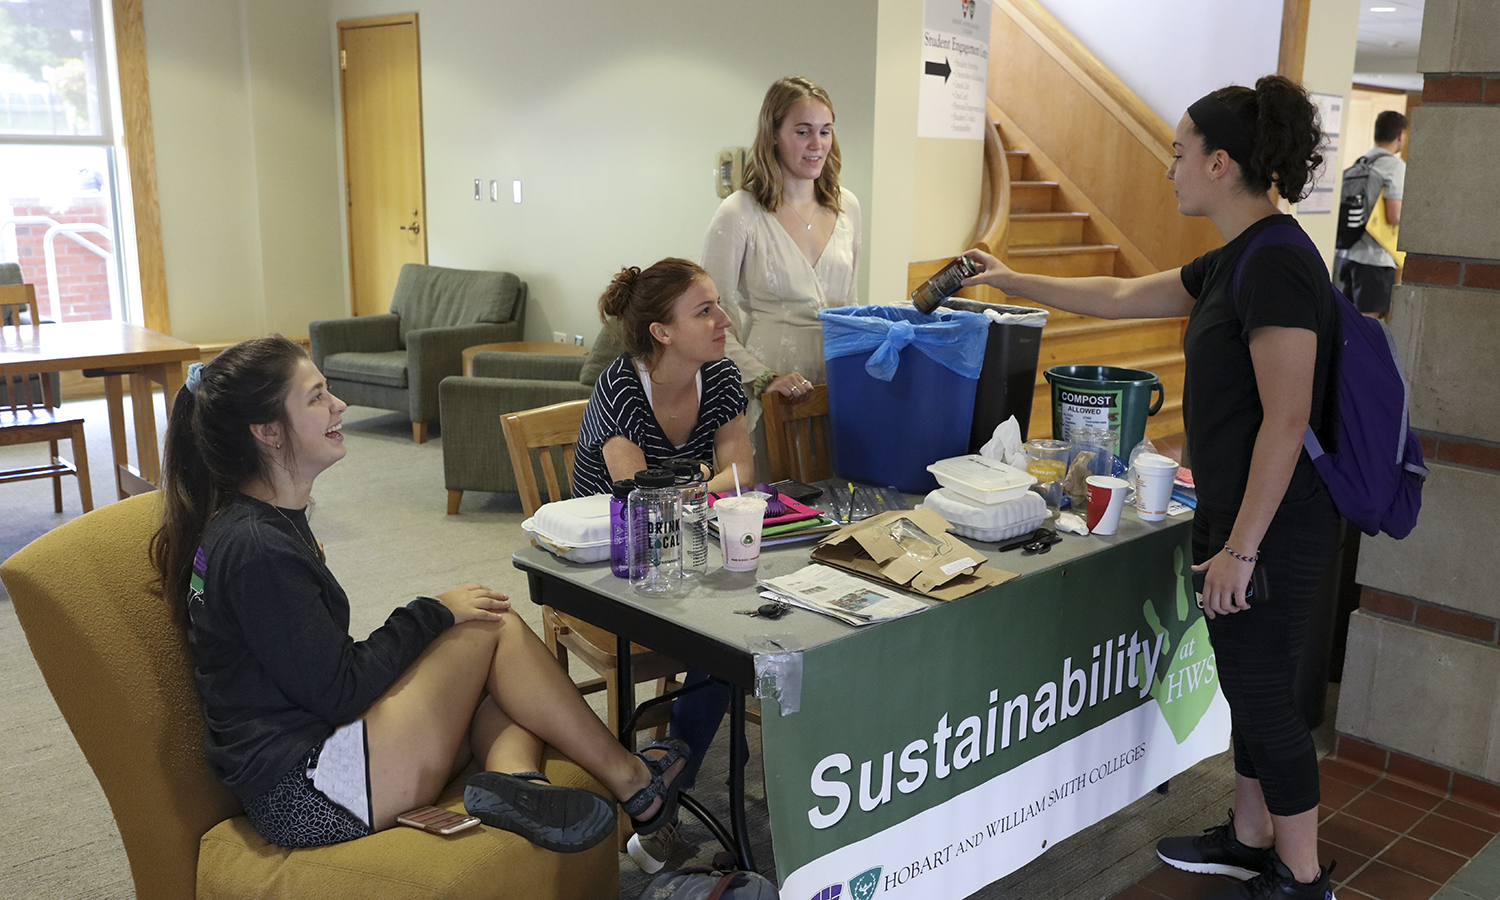 EcoReps Teya Lucyshyn '19, Sarah Boynton '19 and Daria Stacy '19 share landfill diversion initiatives with Kaitlin Hunt '19, including recycling and composting options.